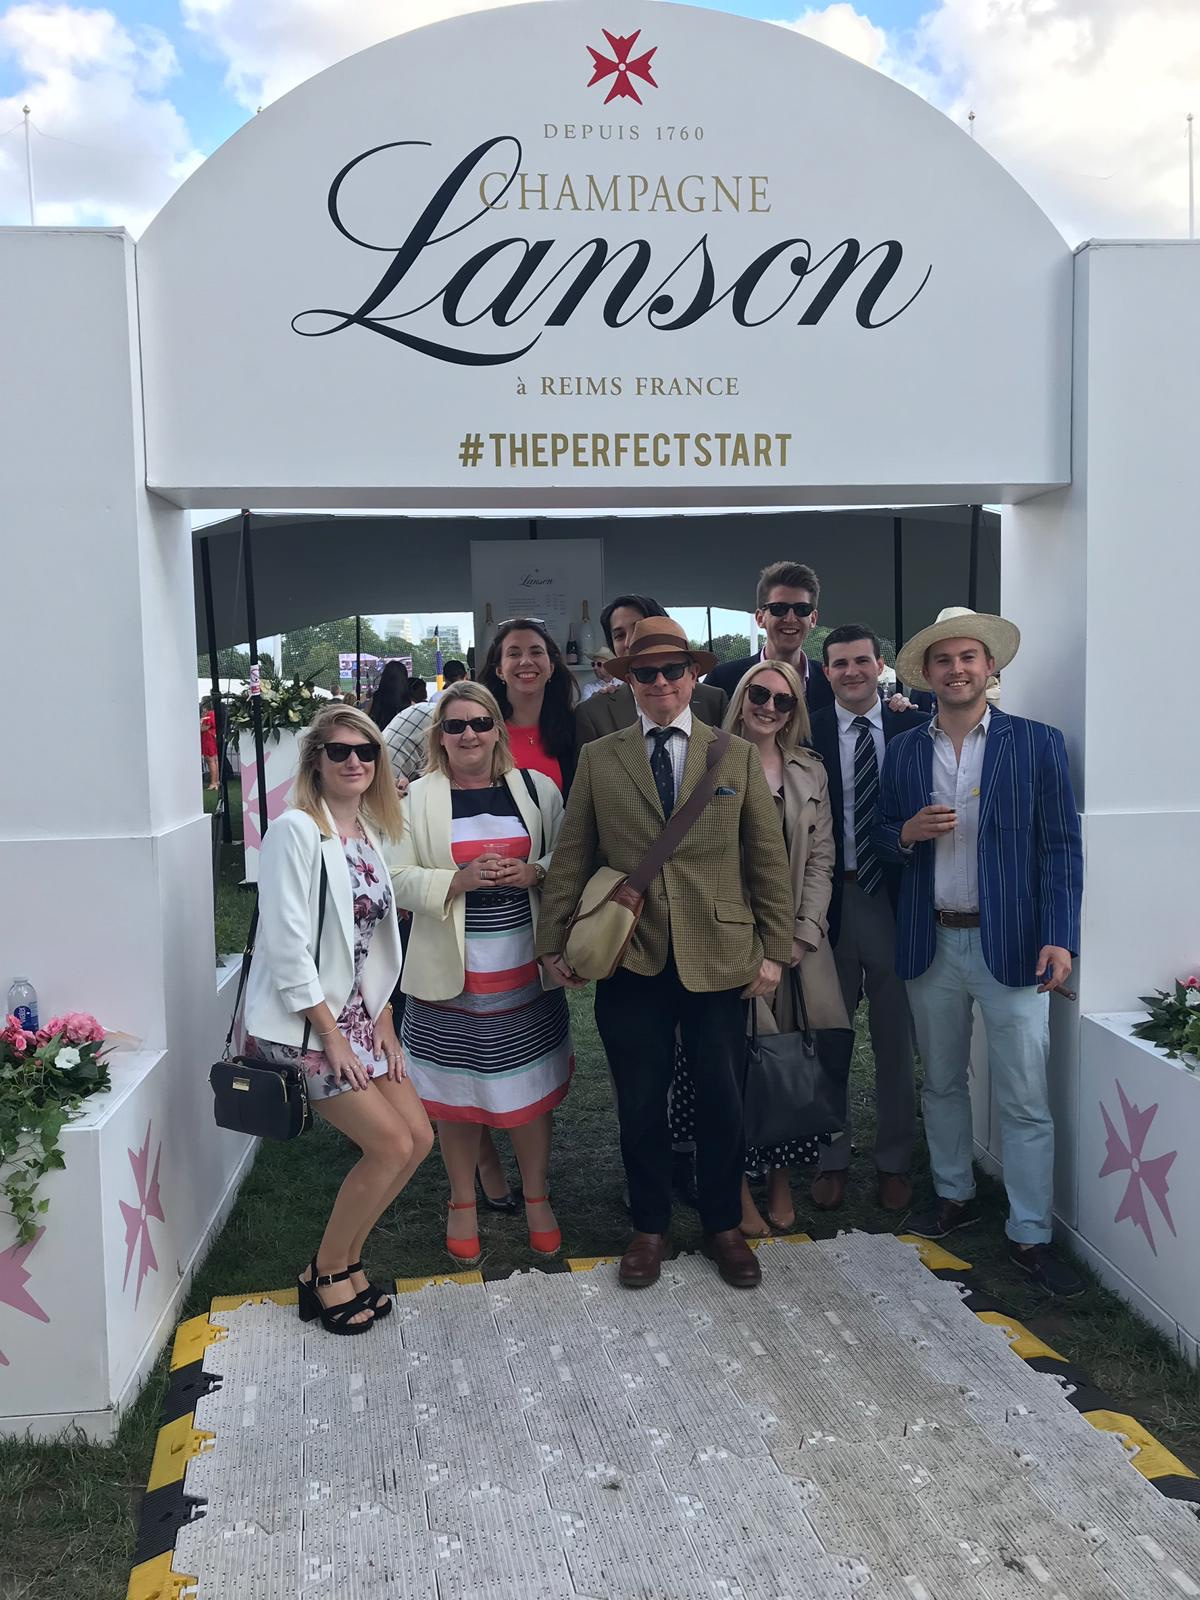 Lanson enclosure polo in the park